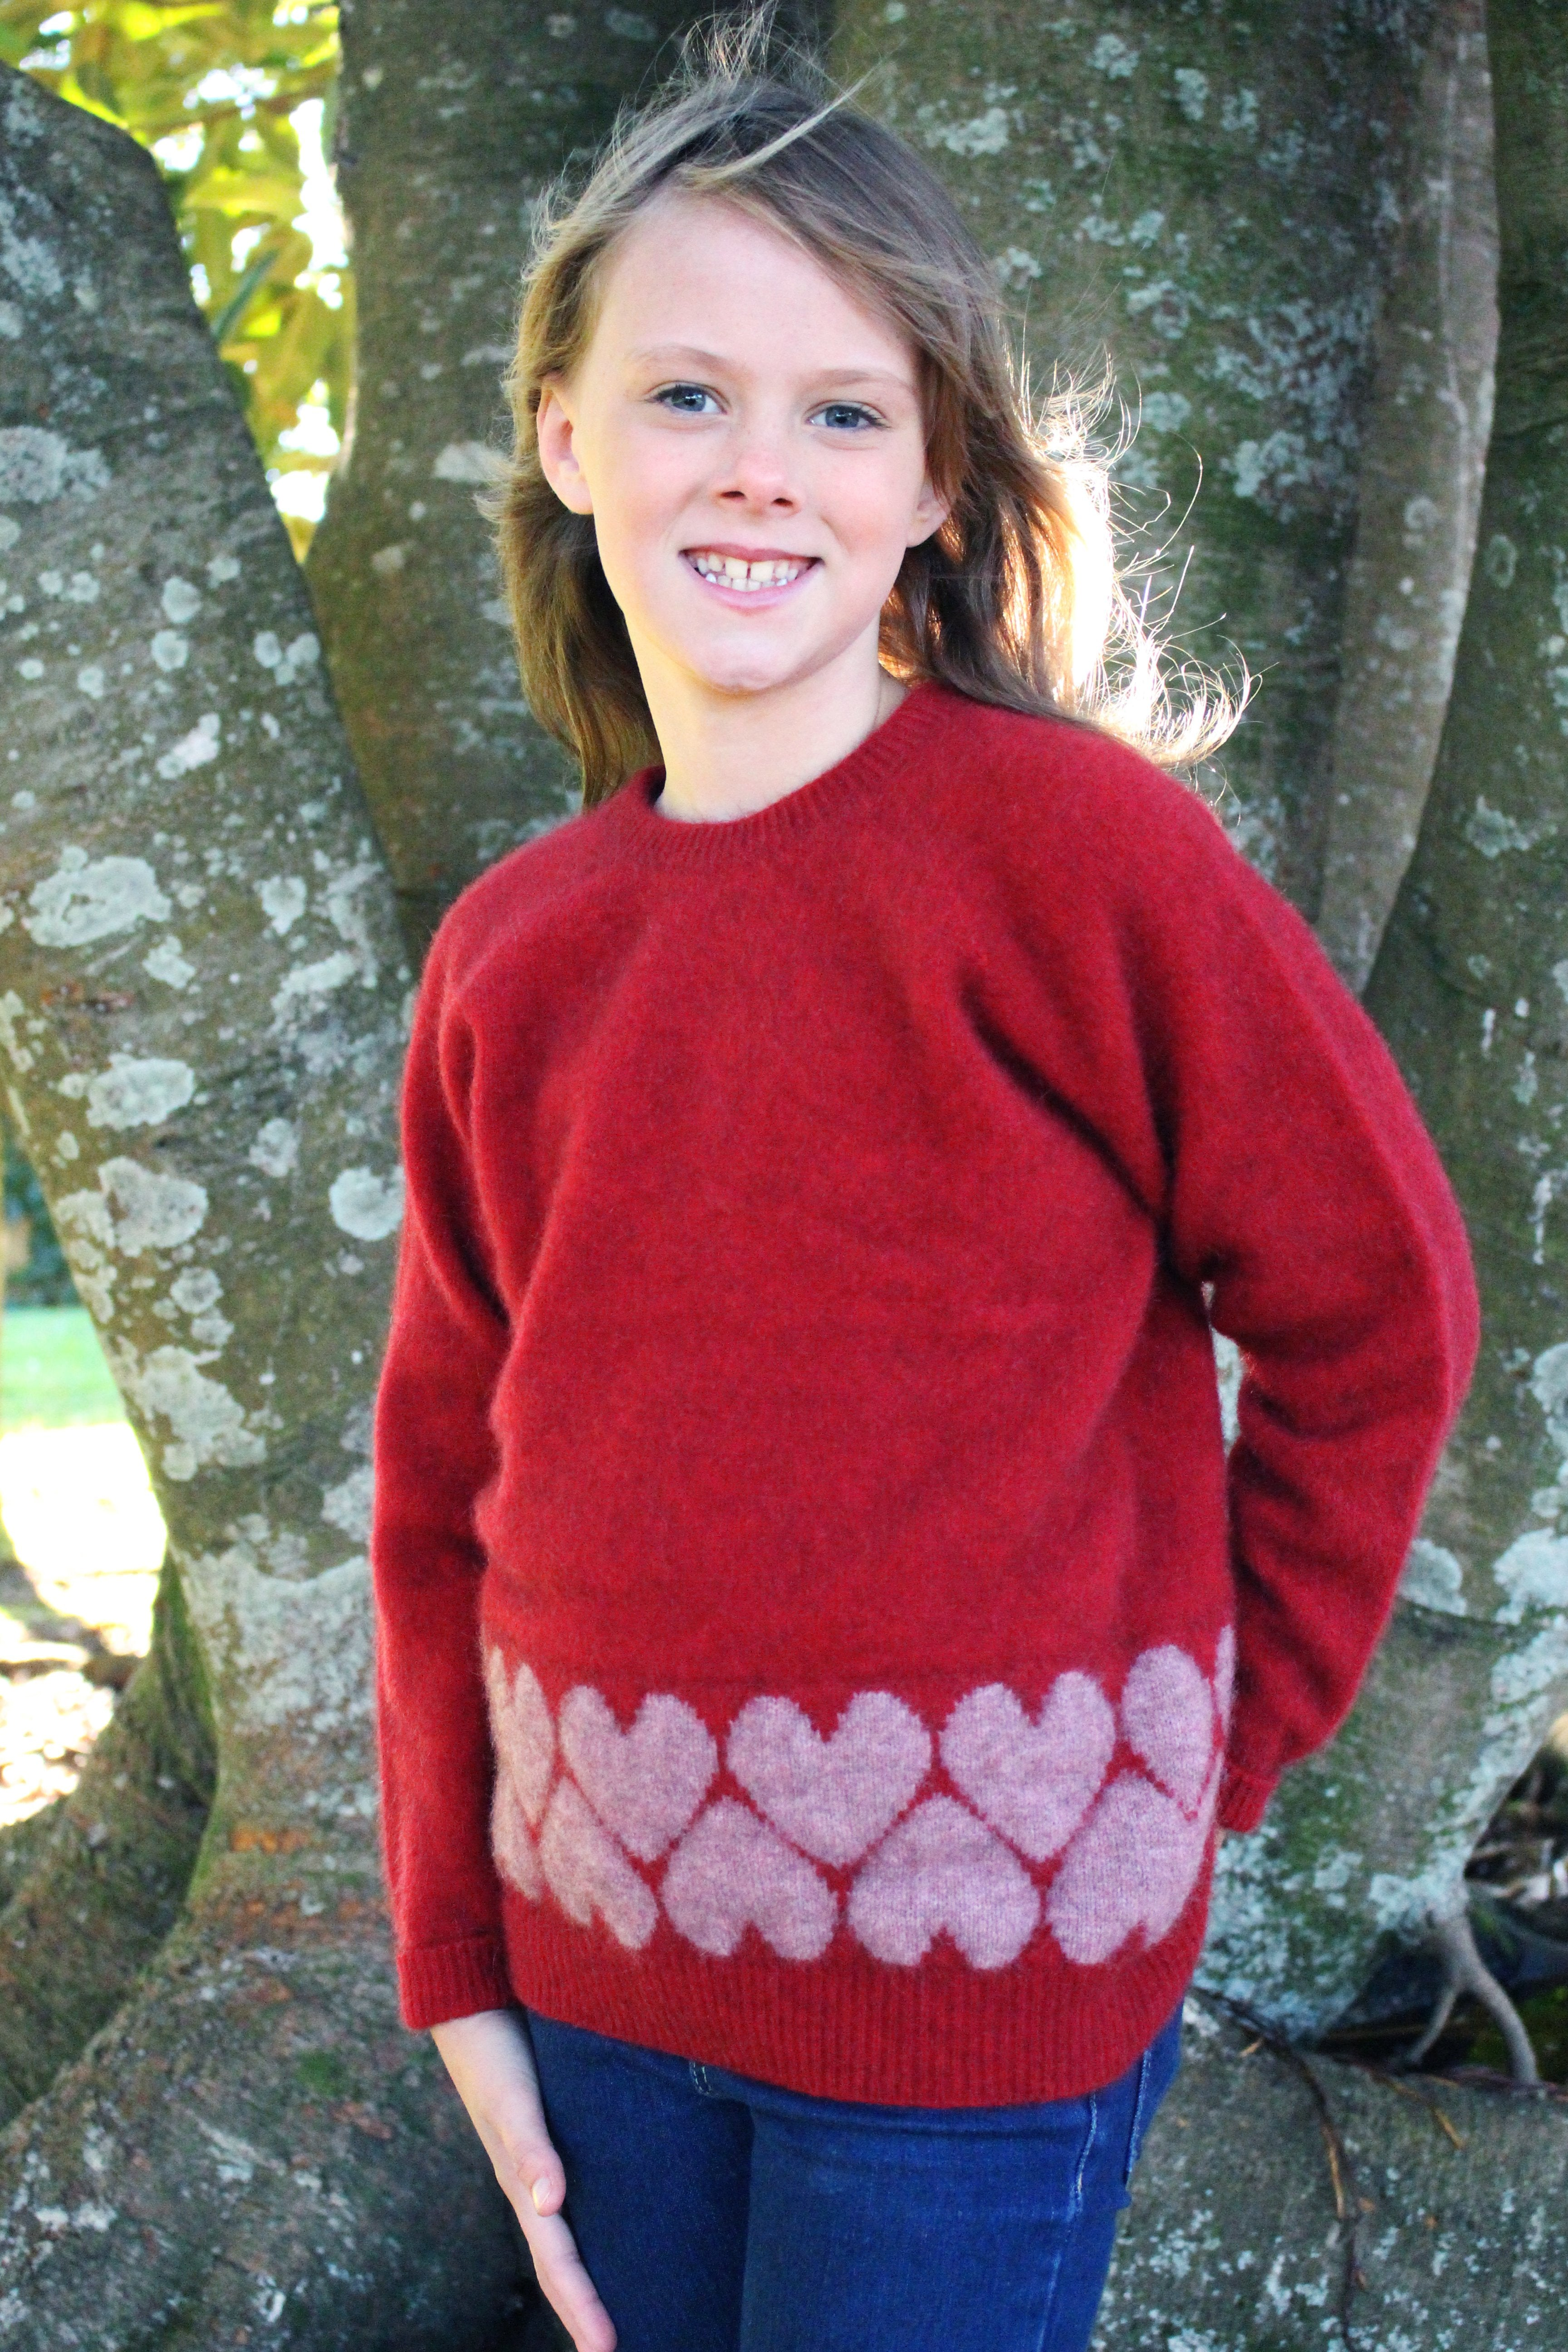 GIRL'S HEART JUMPER